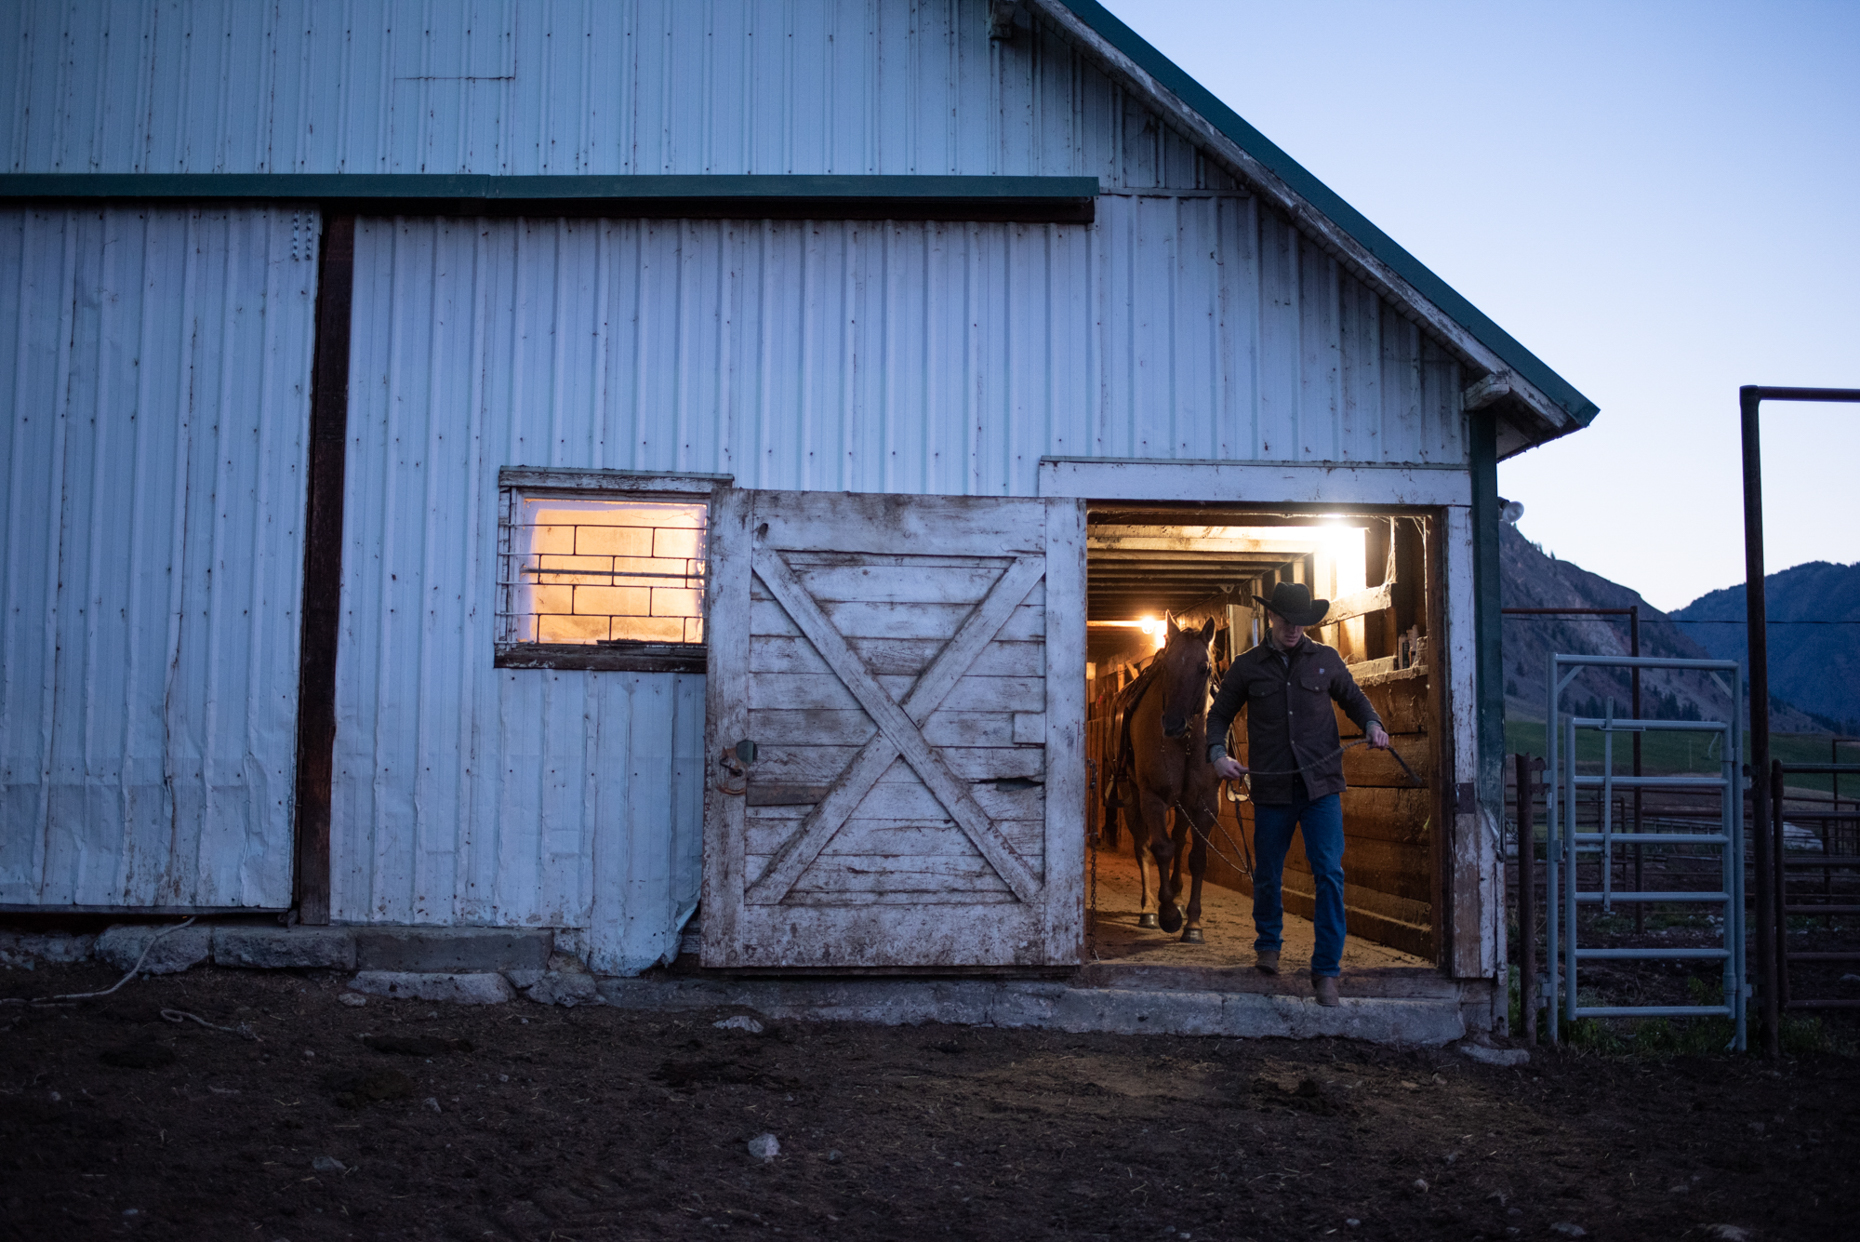 Cowboy and horse leaving barn before sunrise on a northern Washington cattle ranch. Isaac Miller Photography  | Agriculture & Industry Photographer  |  Commercial & Editorial photography  |   Missoula + San Antonio